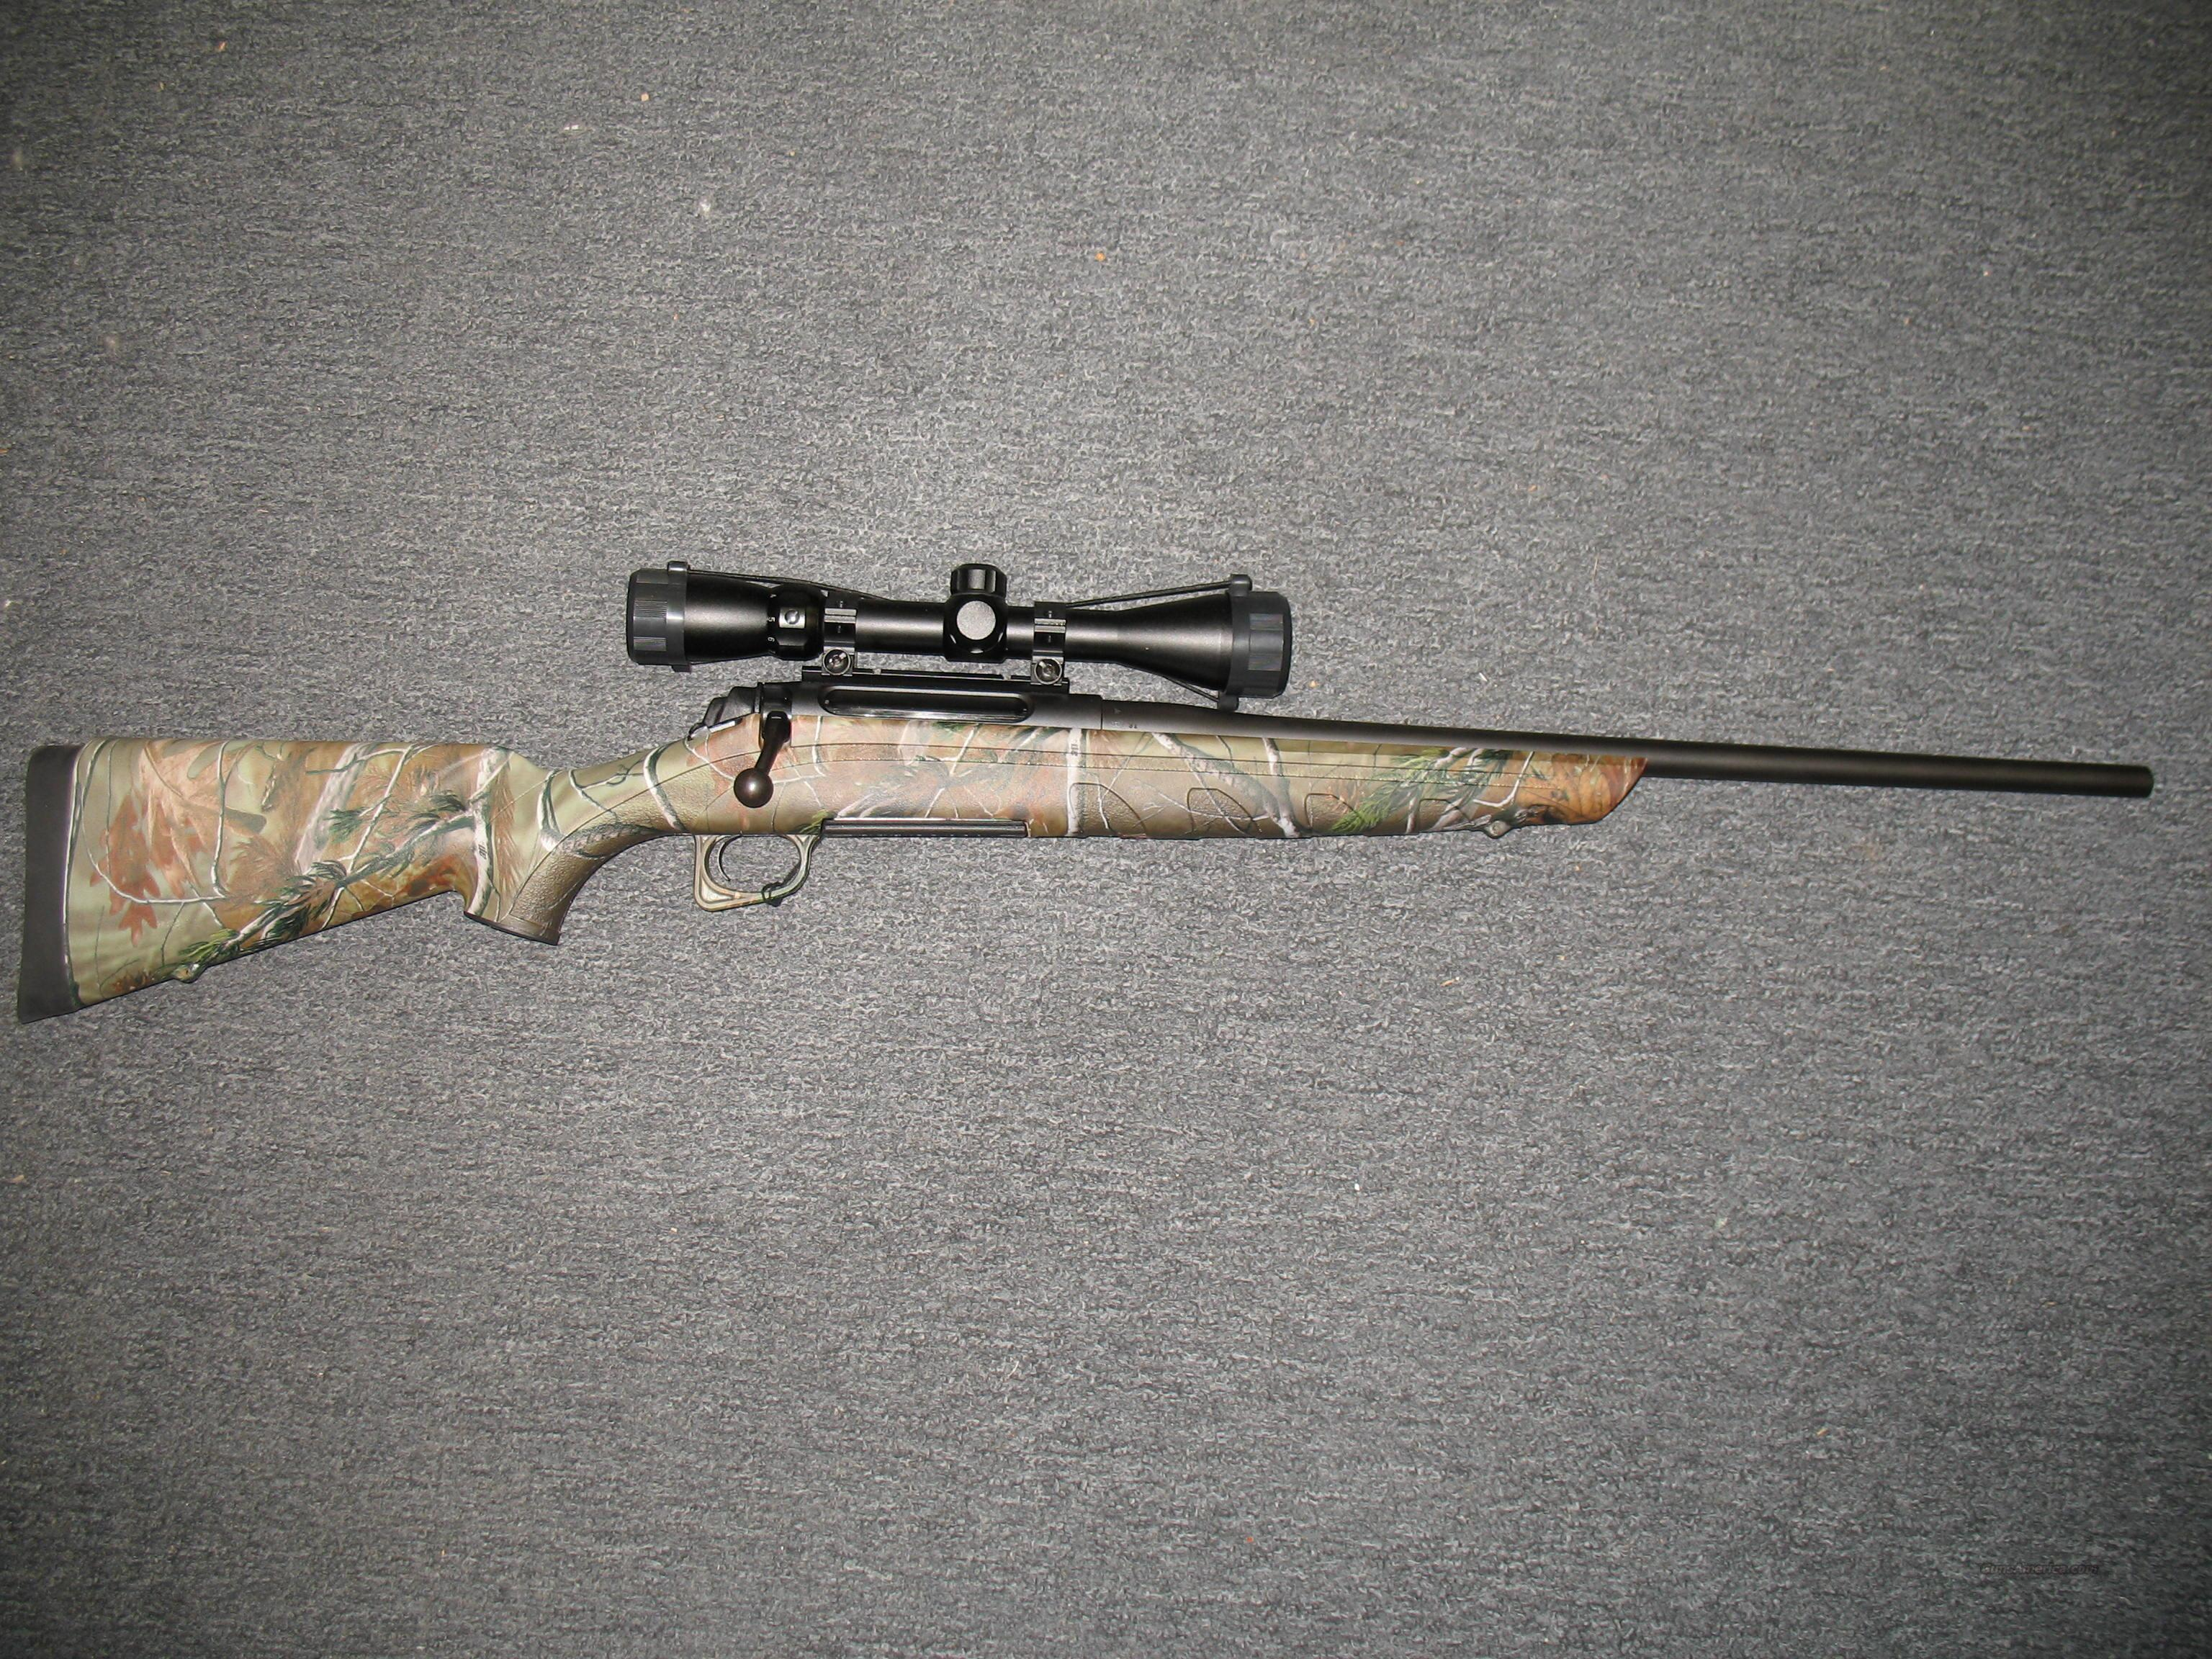 770 White tail Pro w/3-9x40 scope  .30-06 APG Realtree camo  Guns > Rifles > Remington Rifles - Modern > Model 700 > Sporting